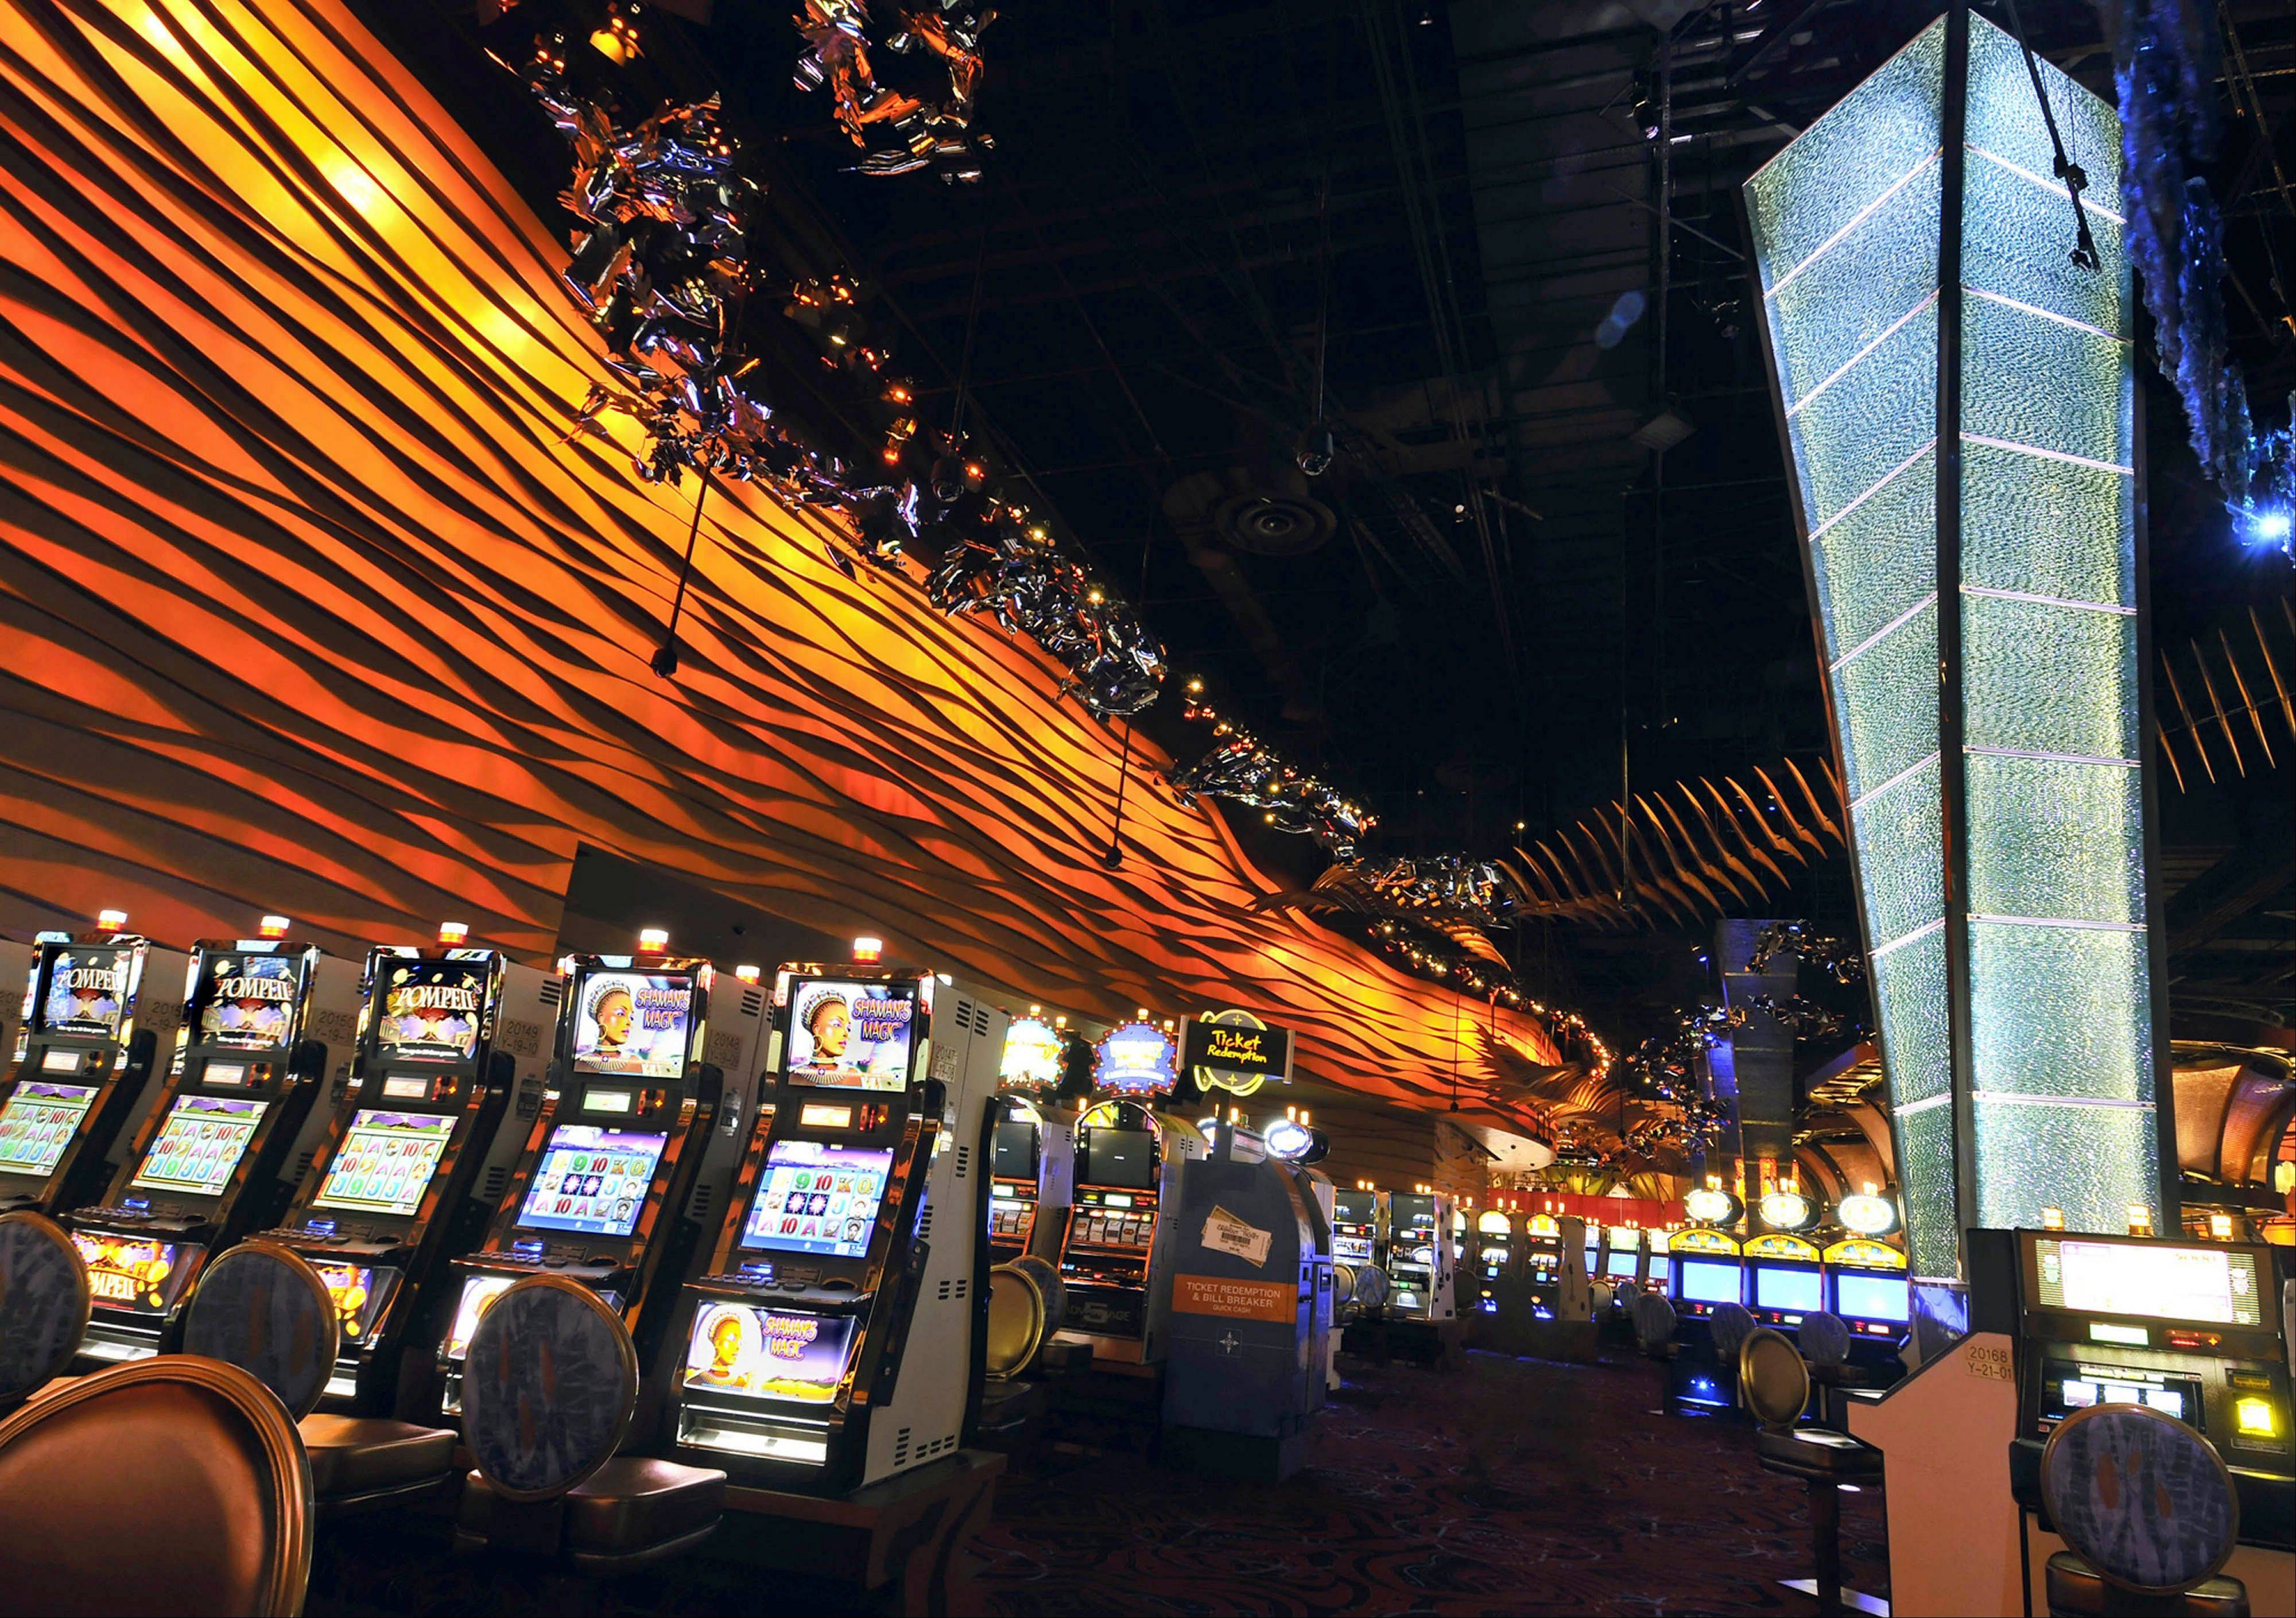 The Illinois Gaming Board's chairman says changes made to a proposed gambling expansion bill are merely cosmetic.